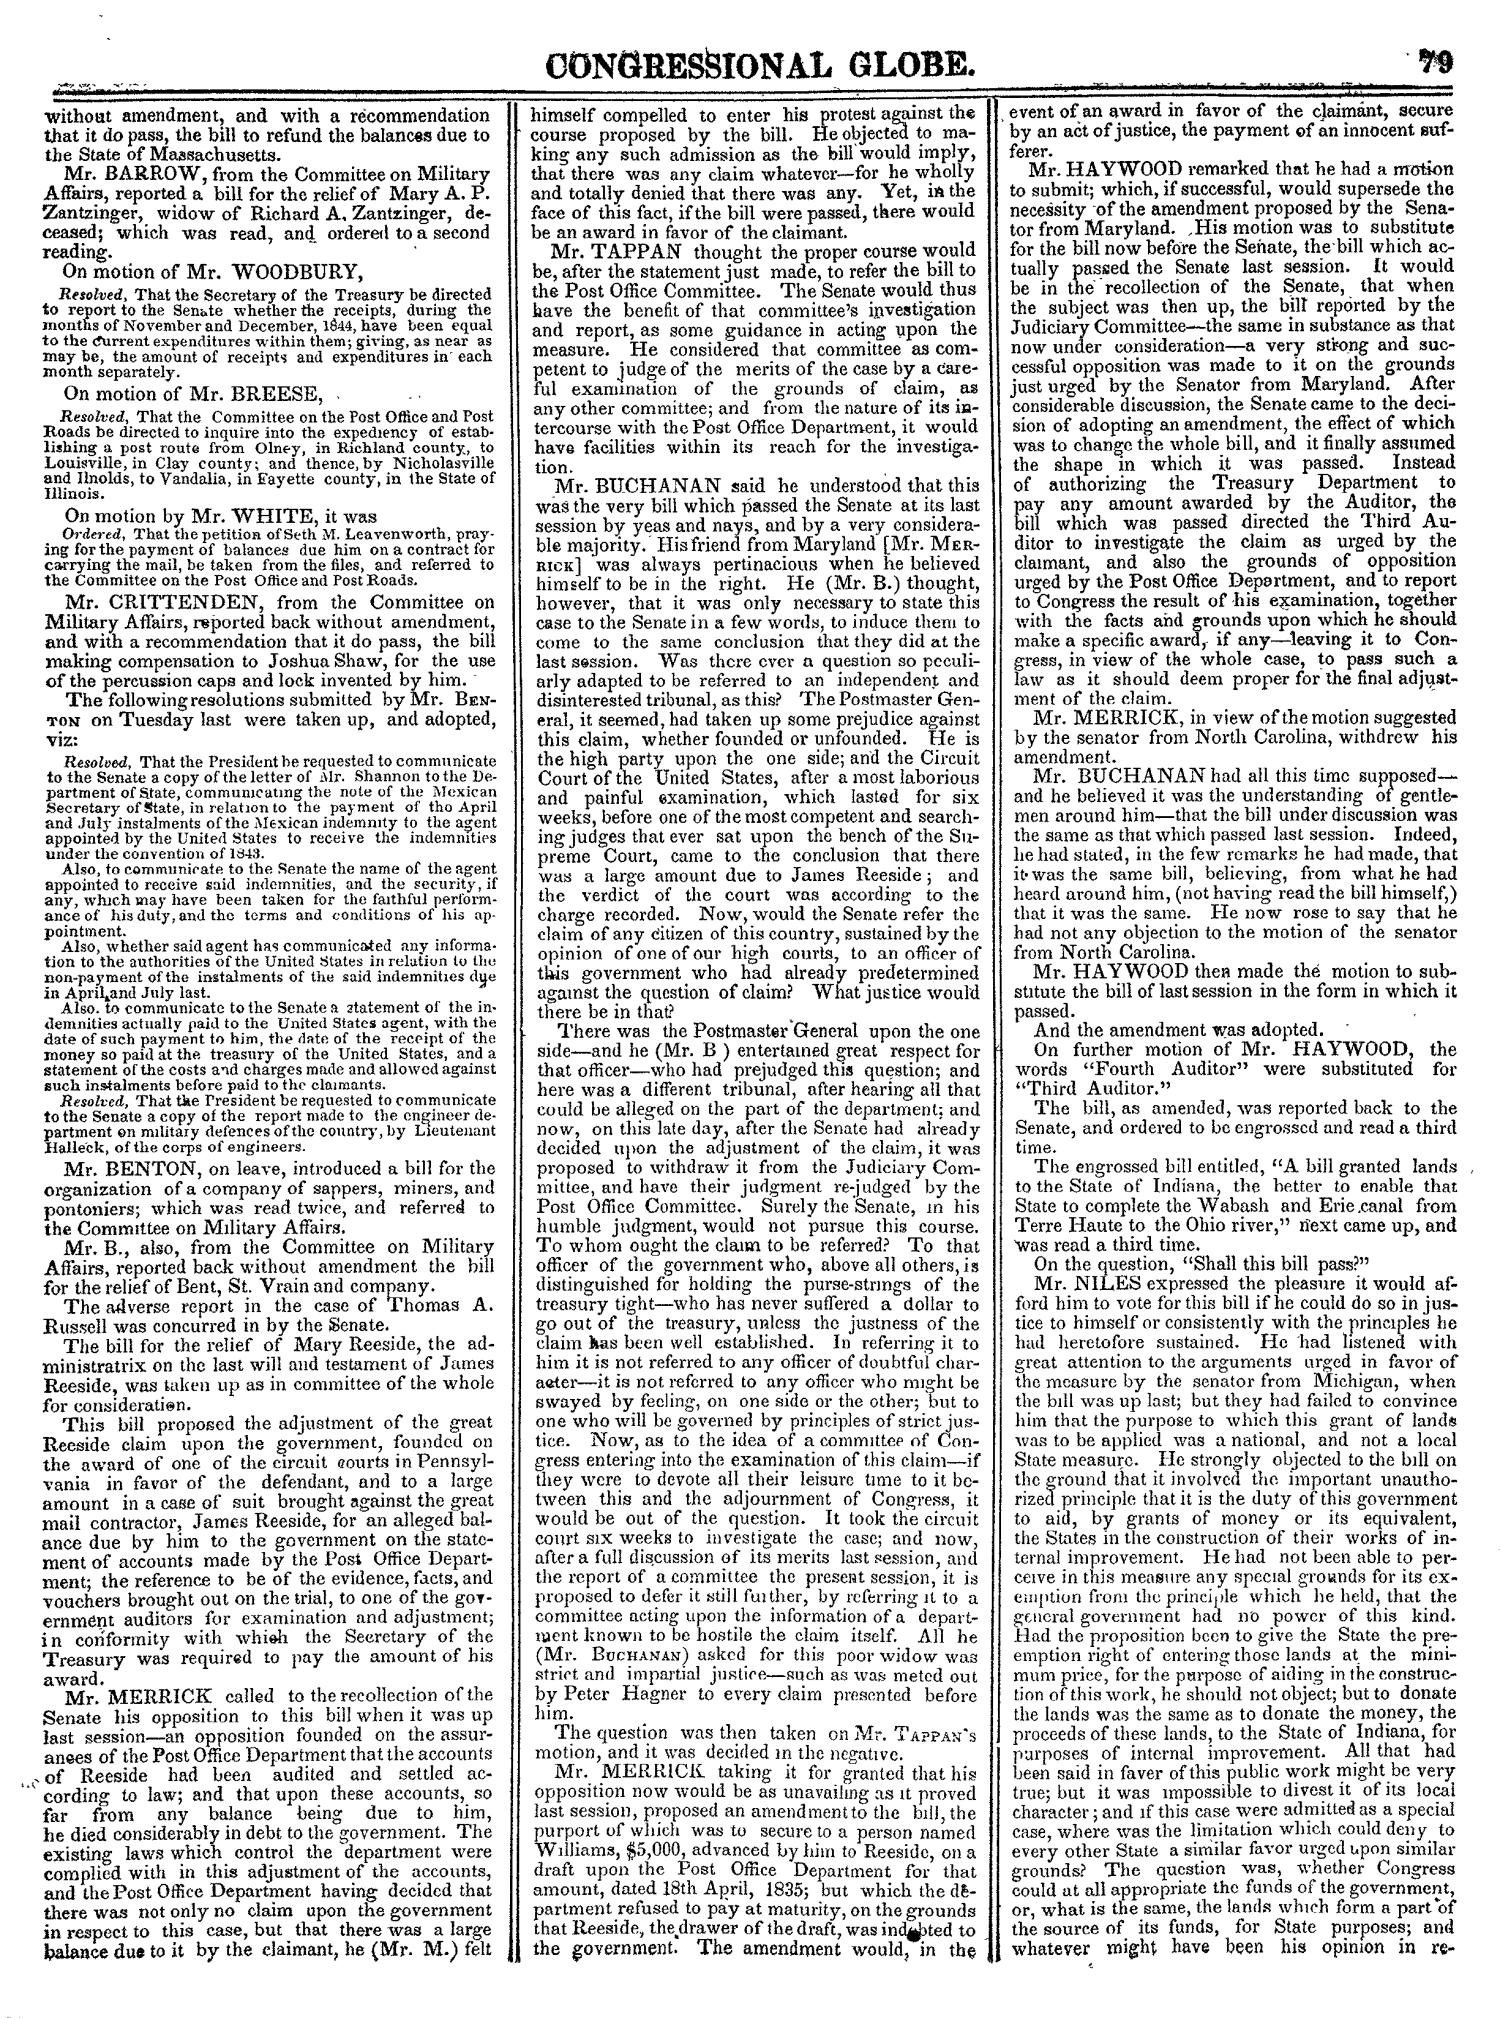 The Congressional Globe, Volume 14: Twenty-Eighth Congress, Second Session                                                                                                      79